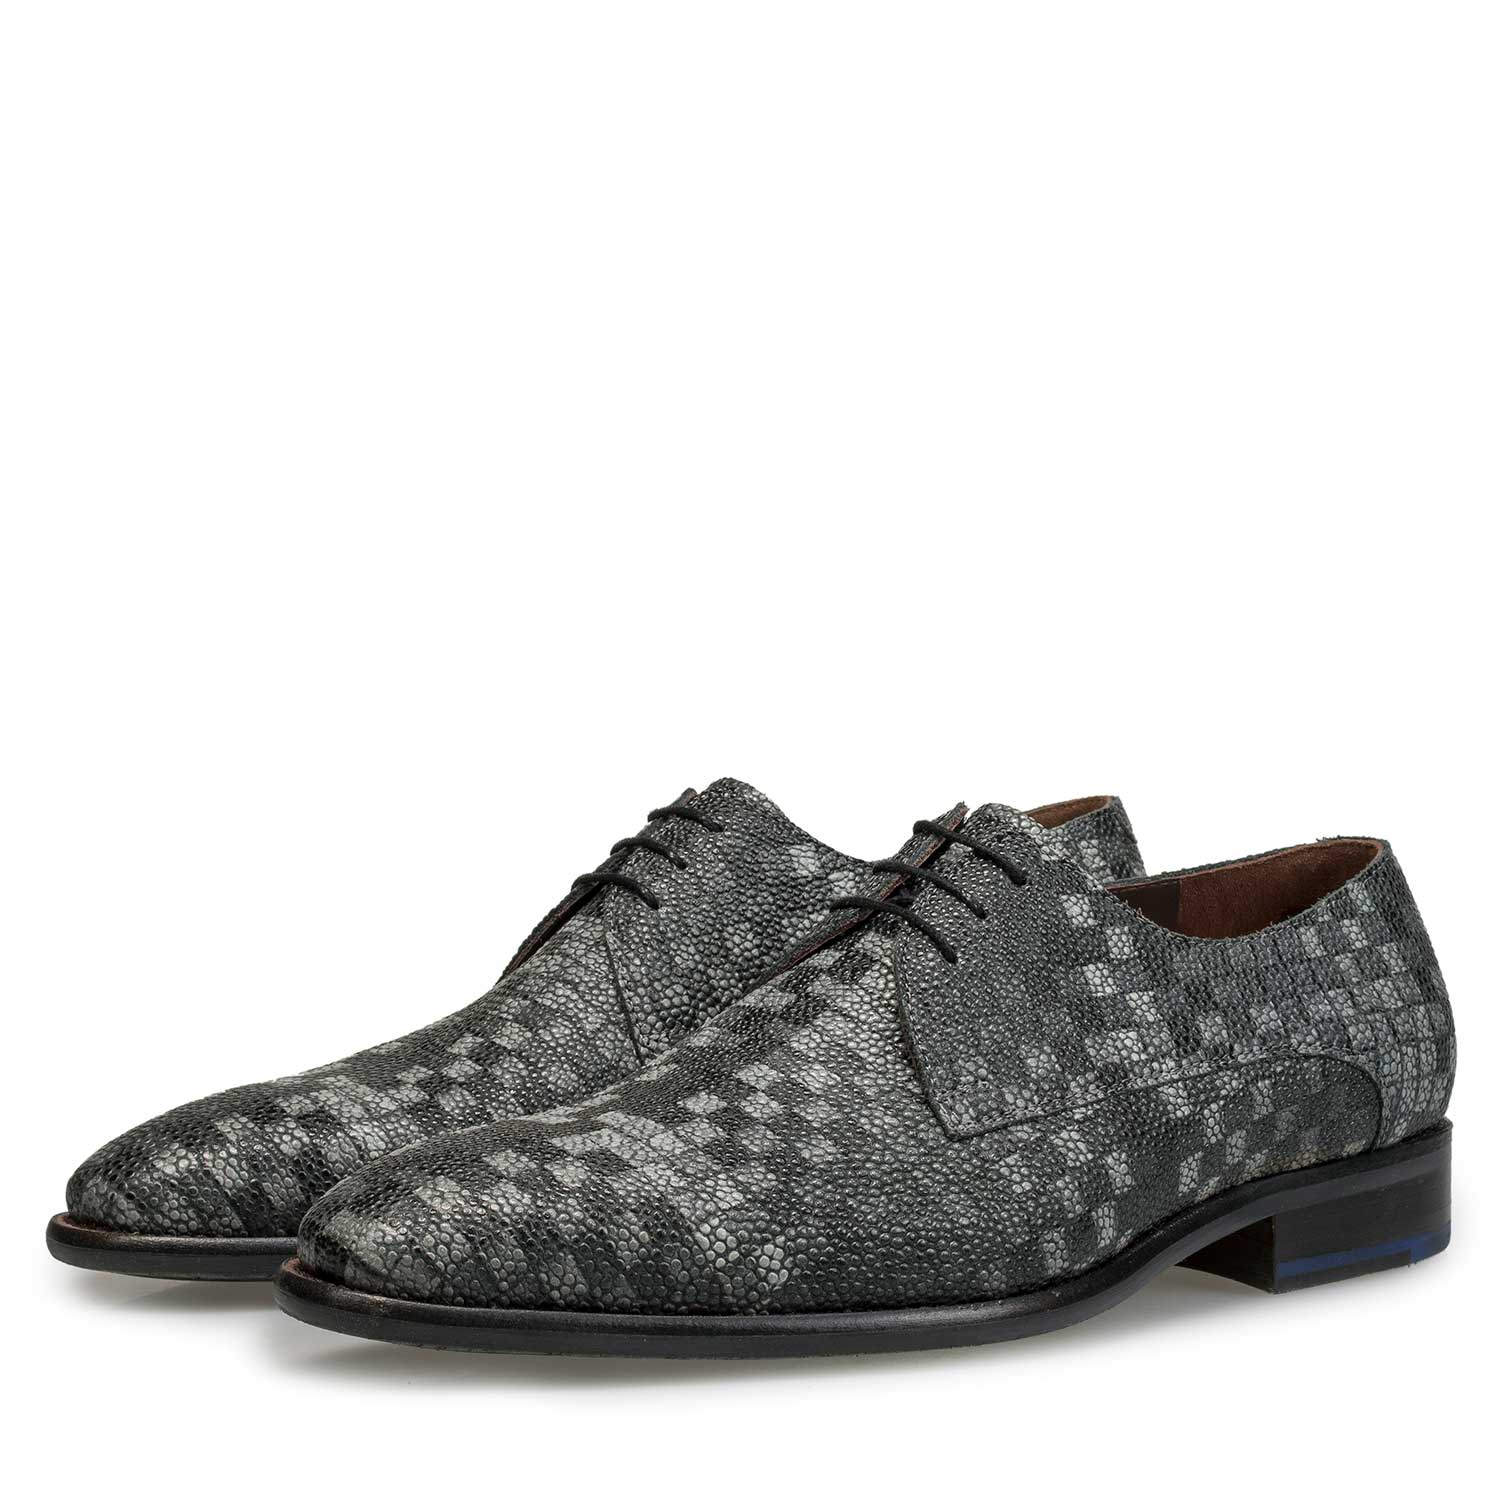 18069/02 - Grey printed calf's leather lace shoe